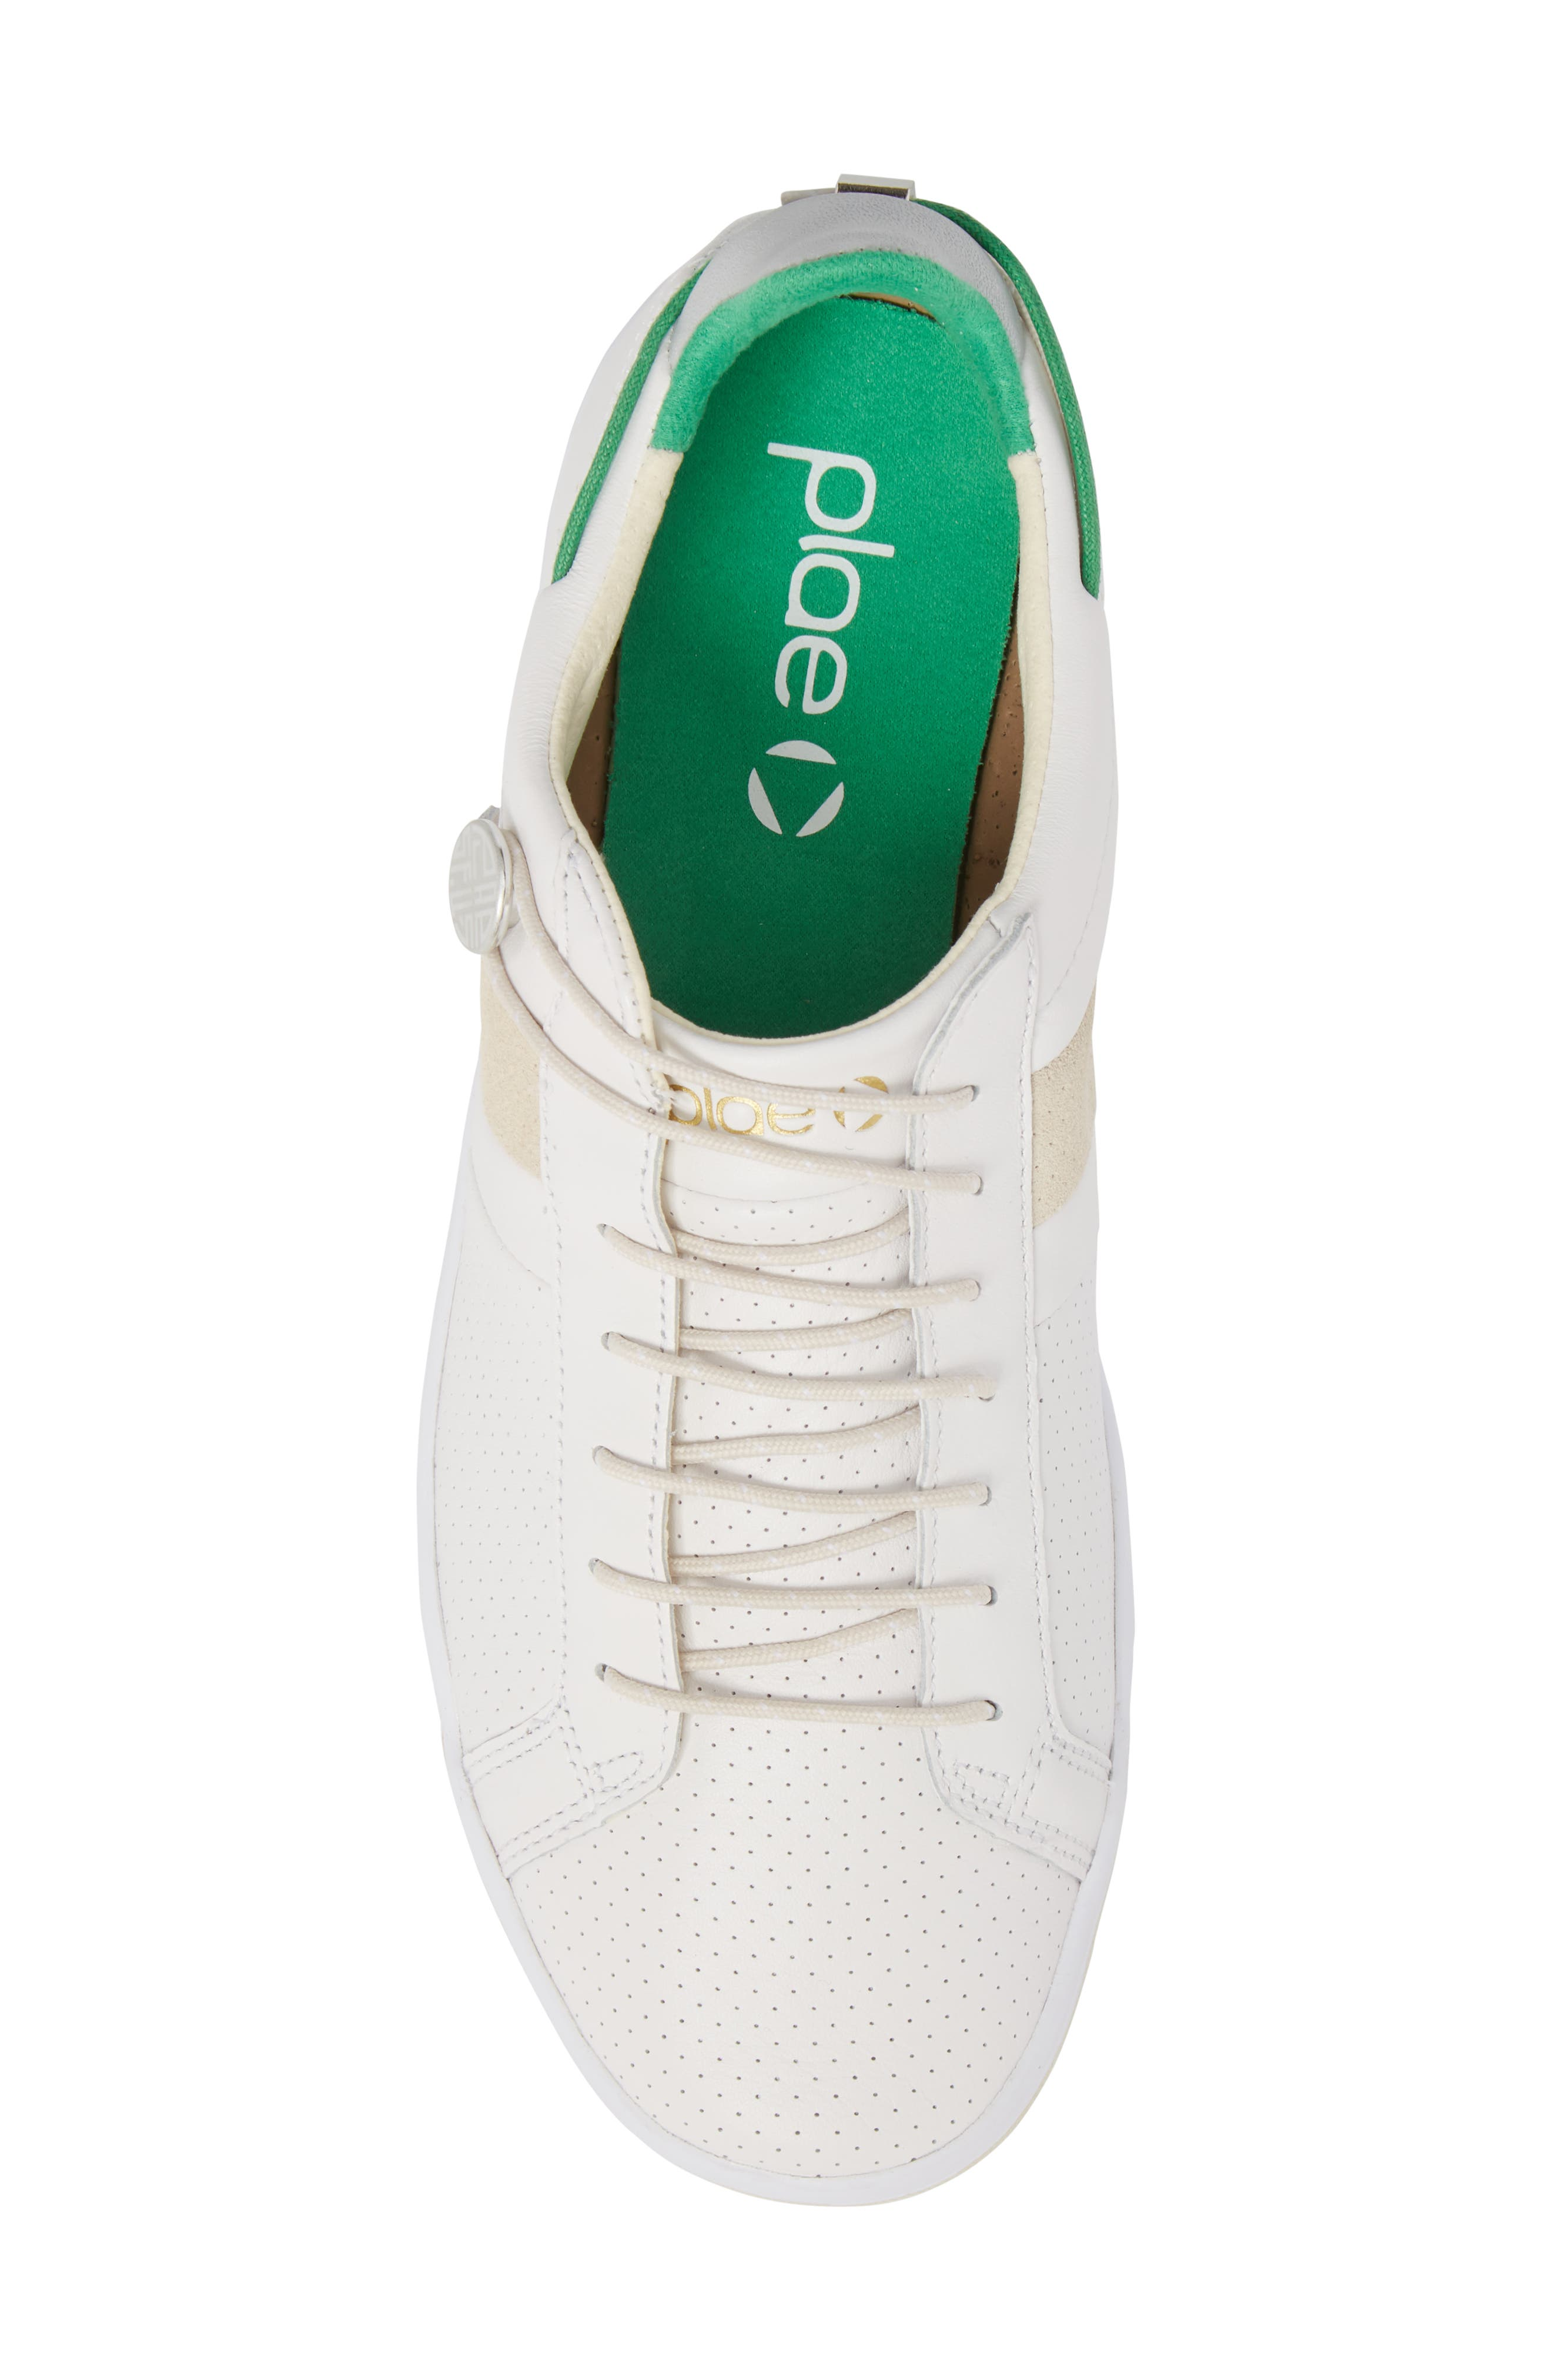 Mulberry Low Top Sneaker,                             Alternate thumbnail 5, color,                             WHITE